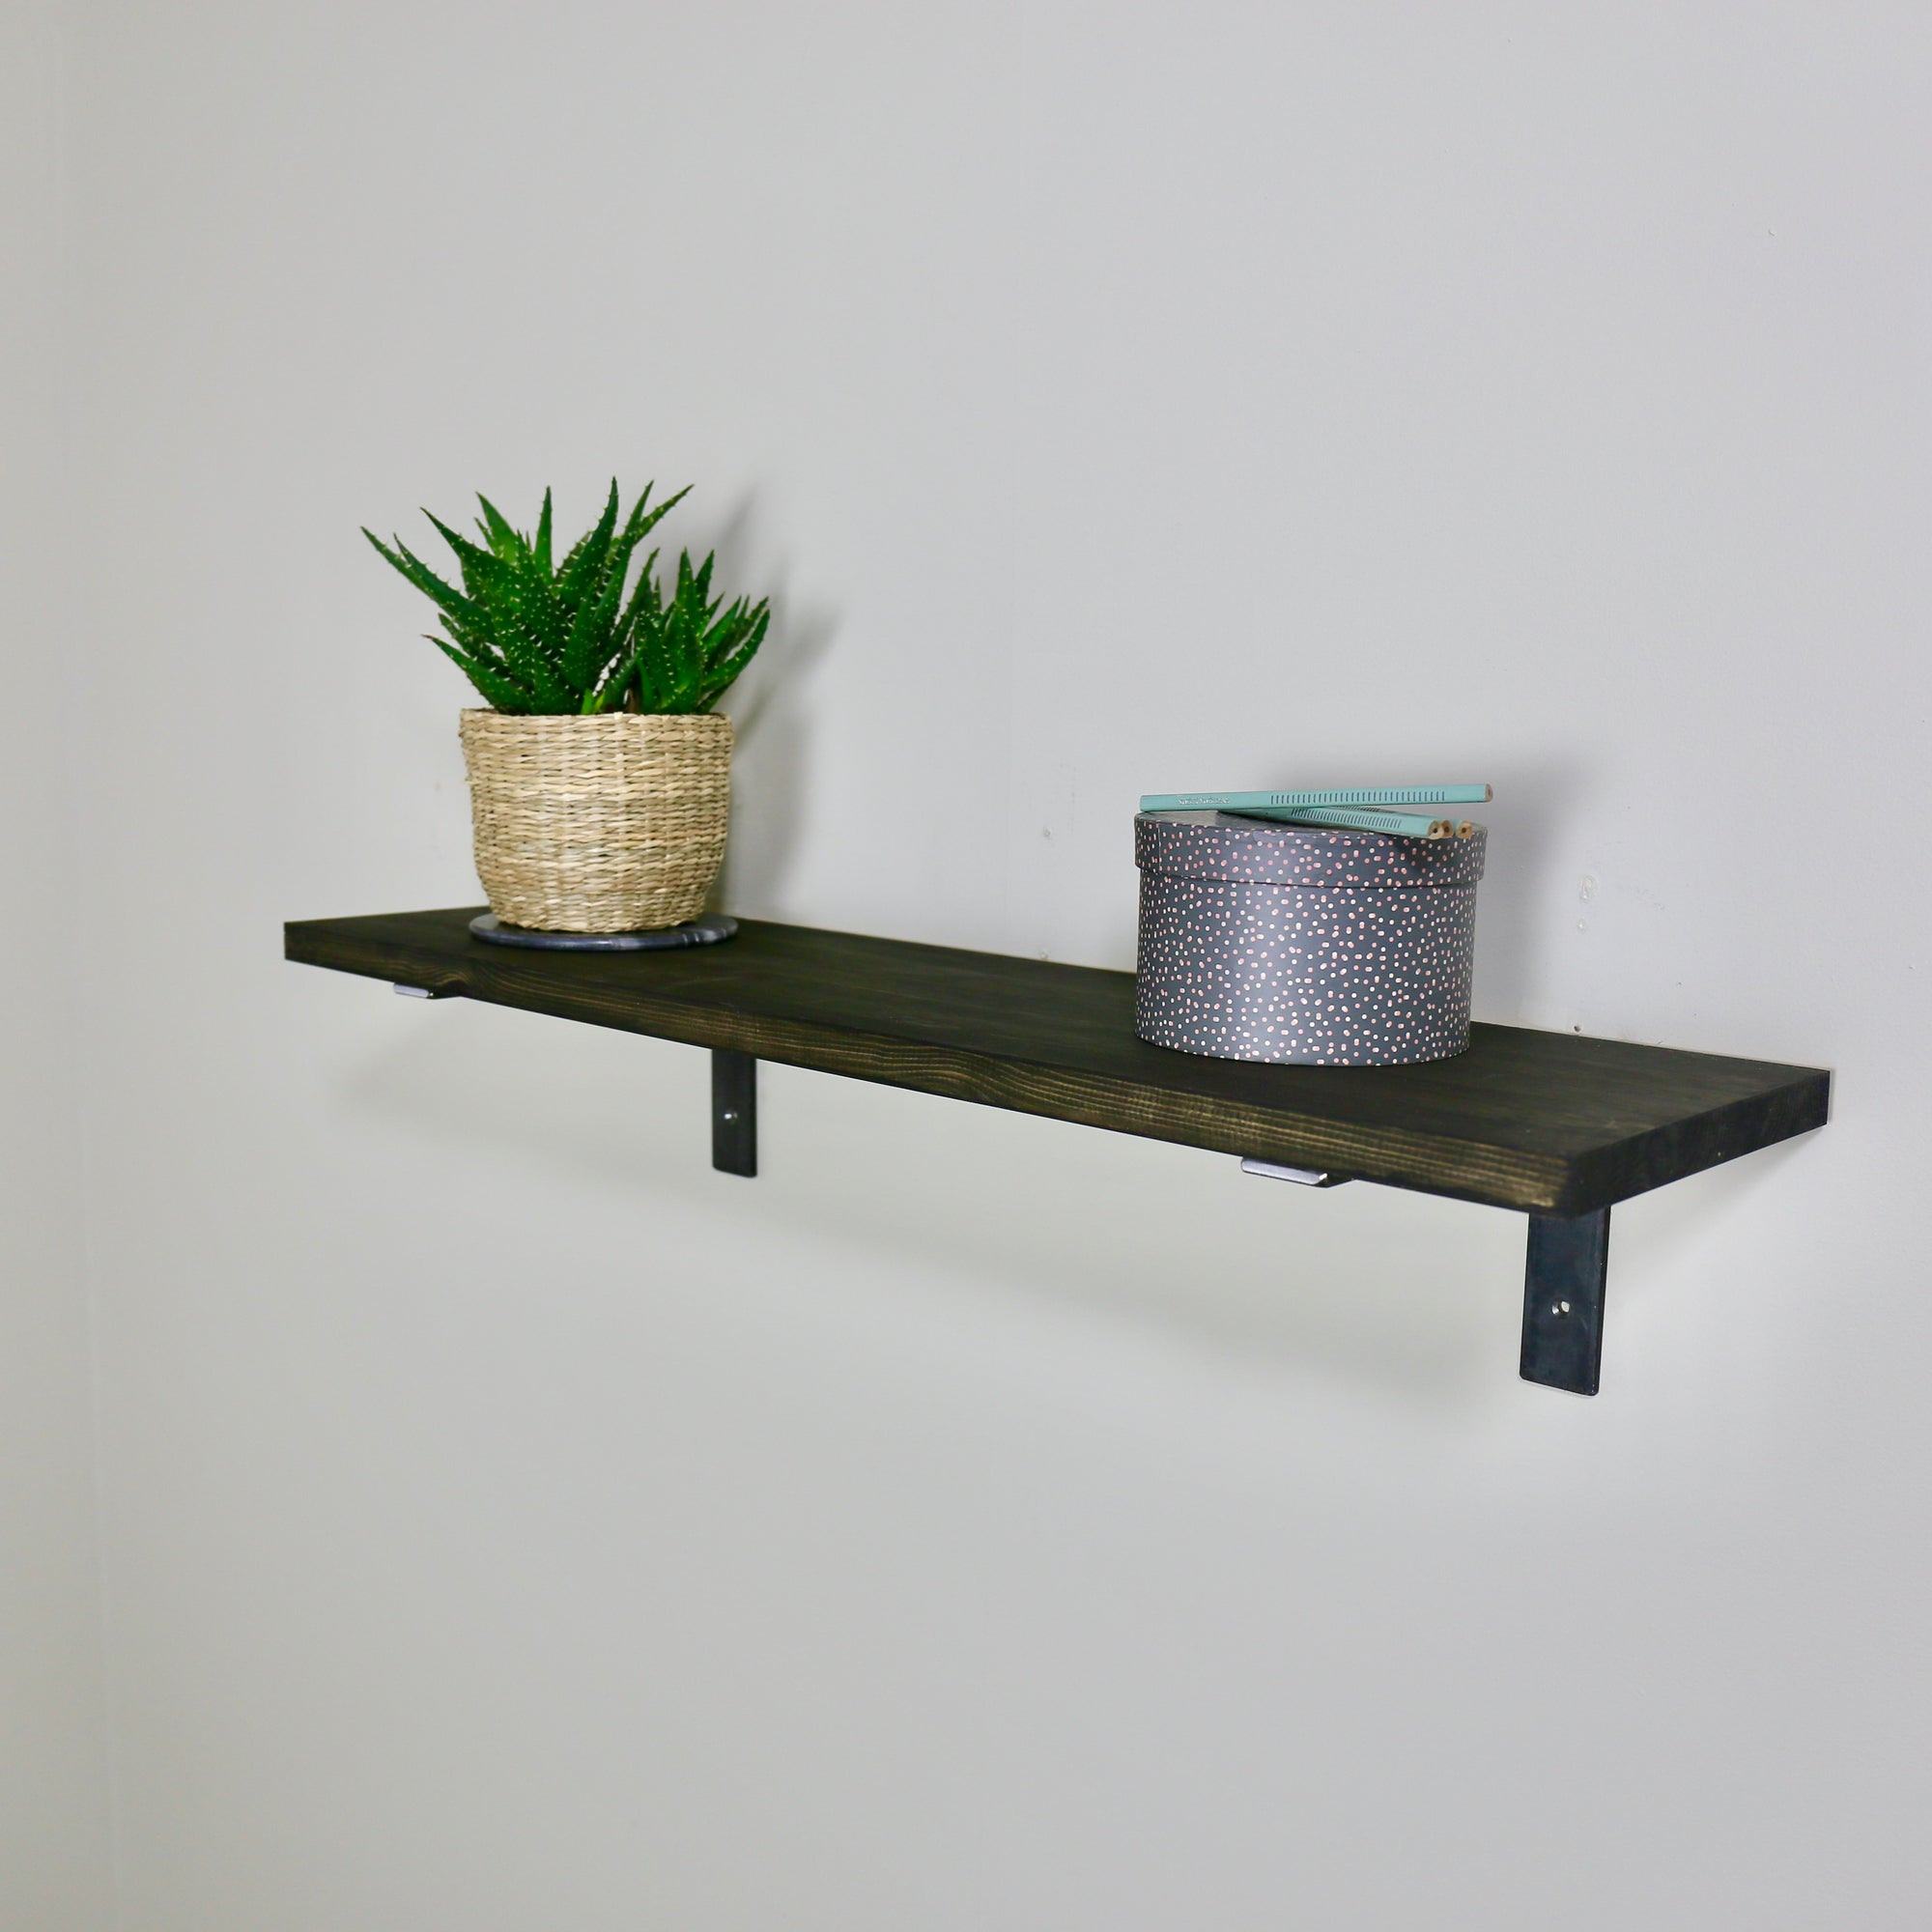 ZIITO H1 - Wood shelf with steel bracket below shelf